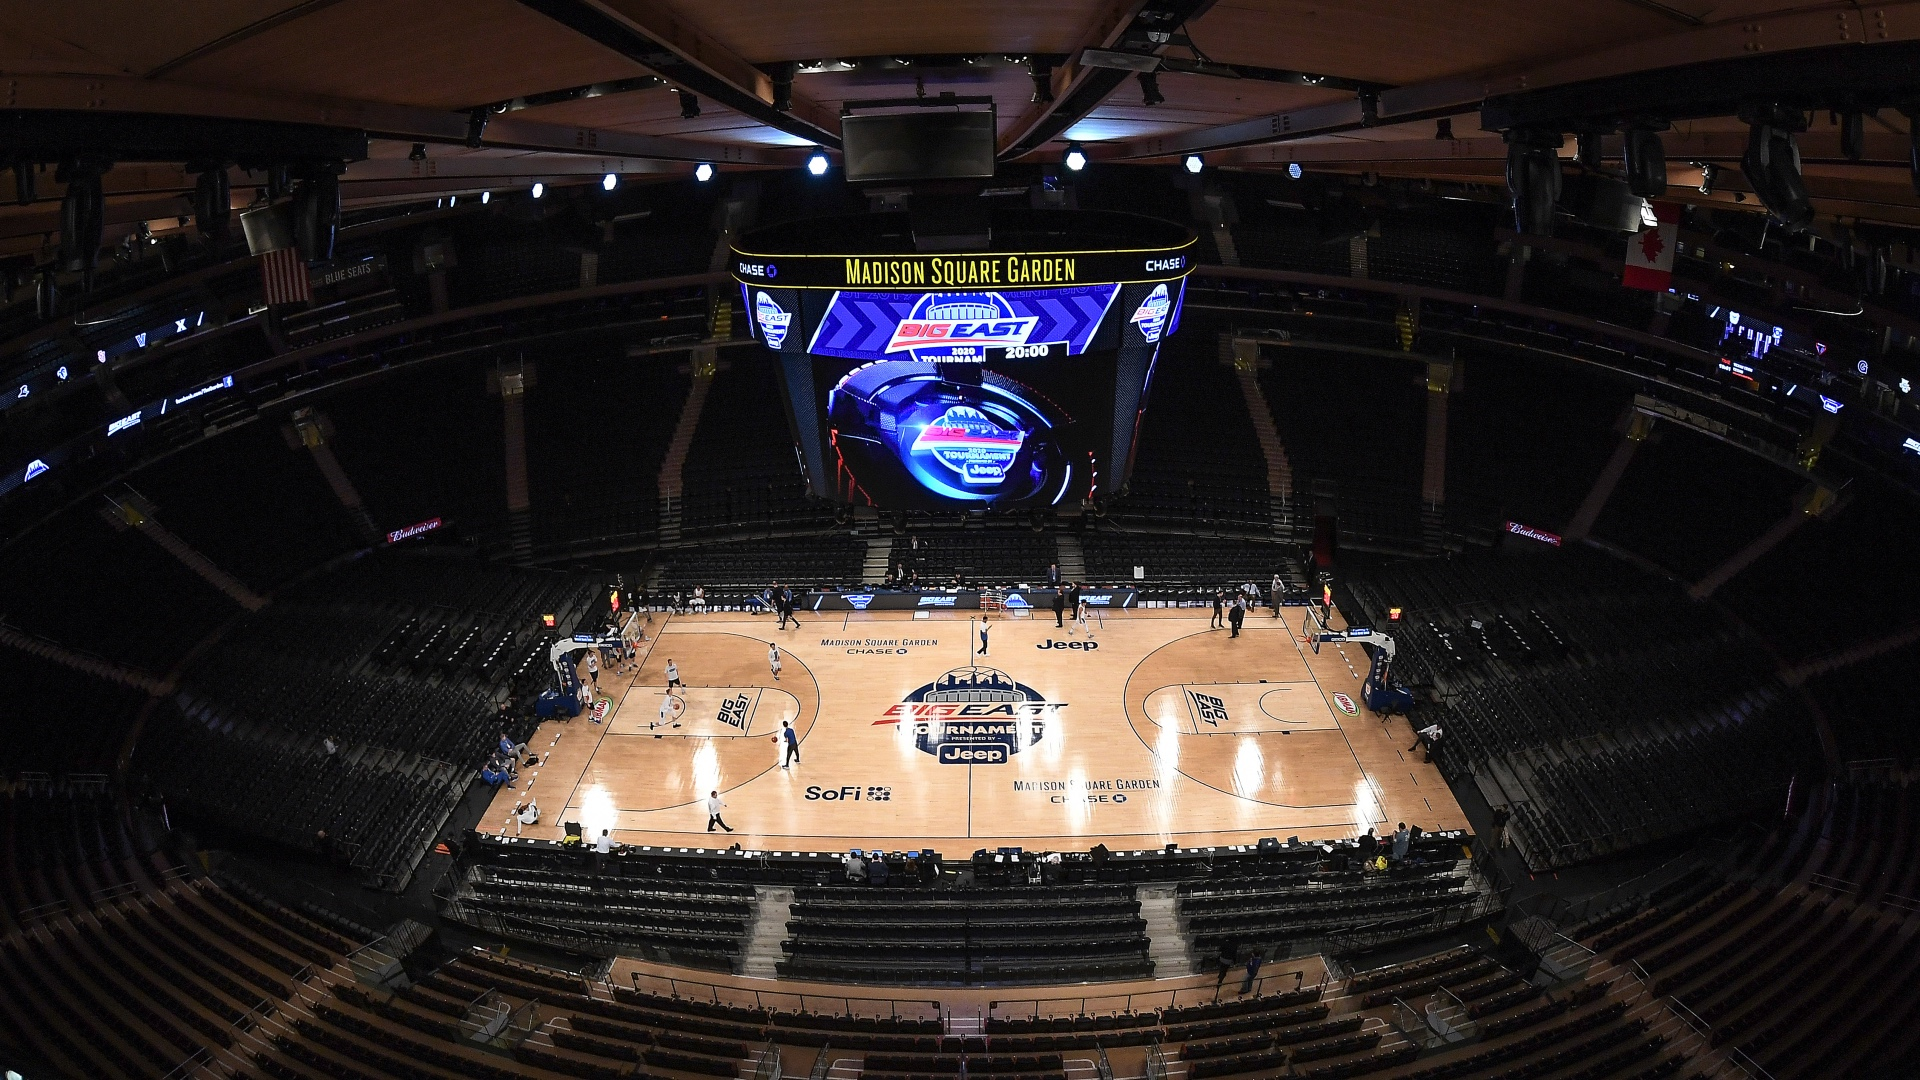 A year after pandemic shutdown, Big East returns to Madison Square Garden — with its magic intact